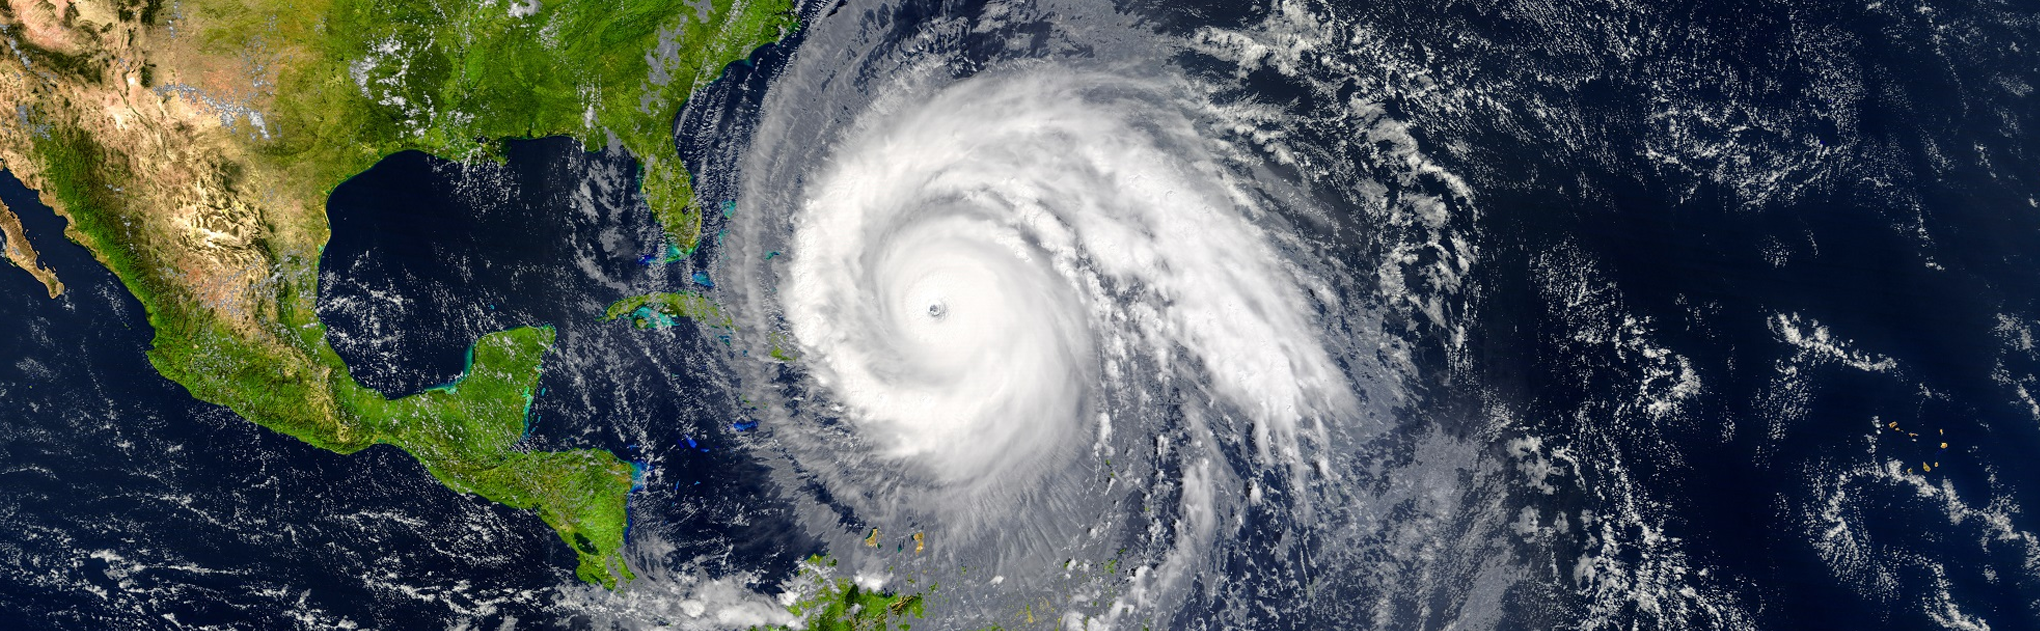 Managing Risks this Hurricane Season by Leveraging Technology